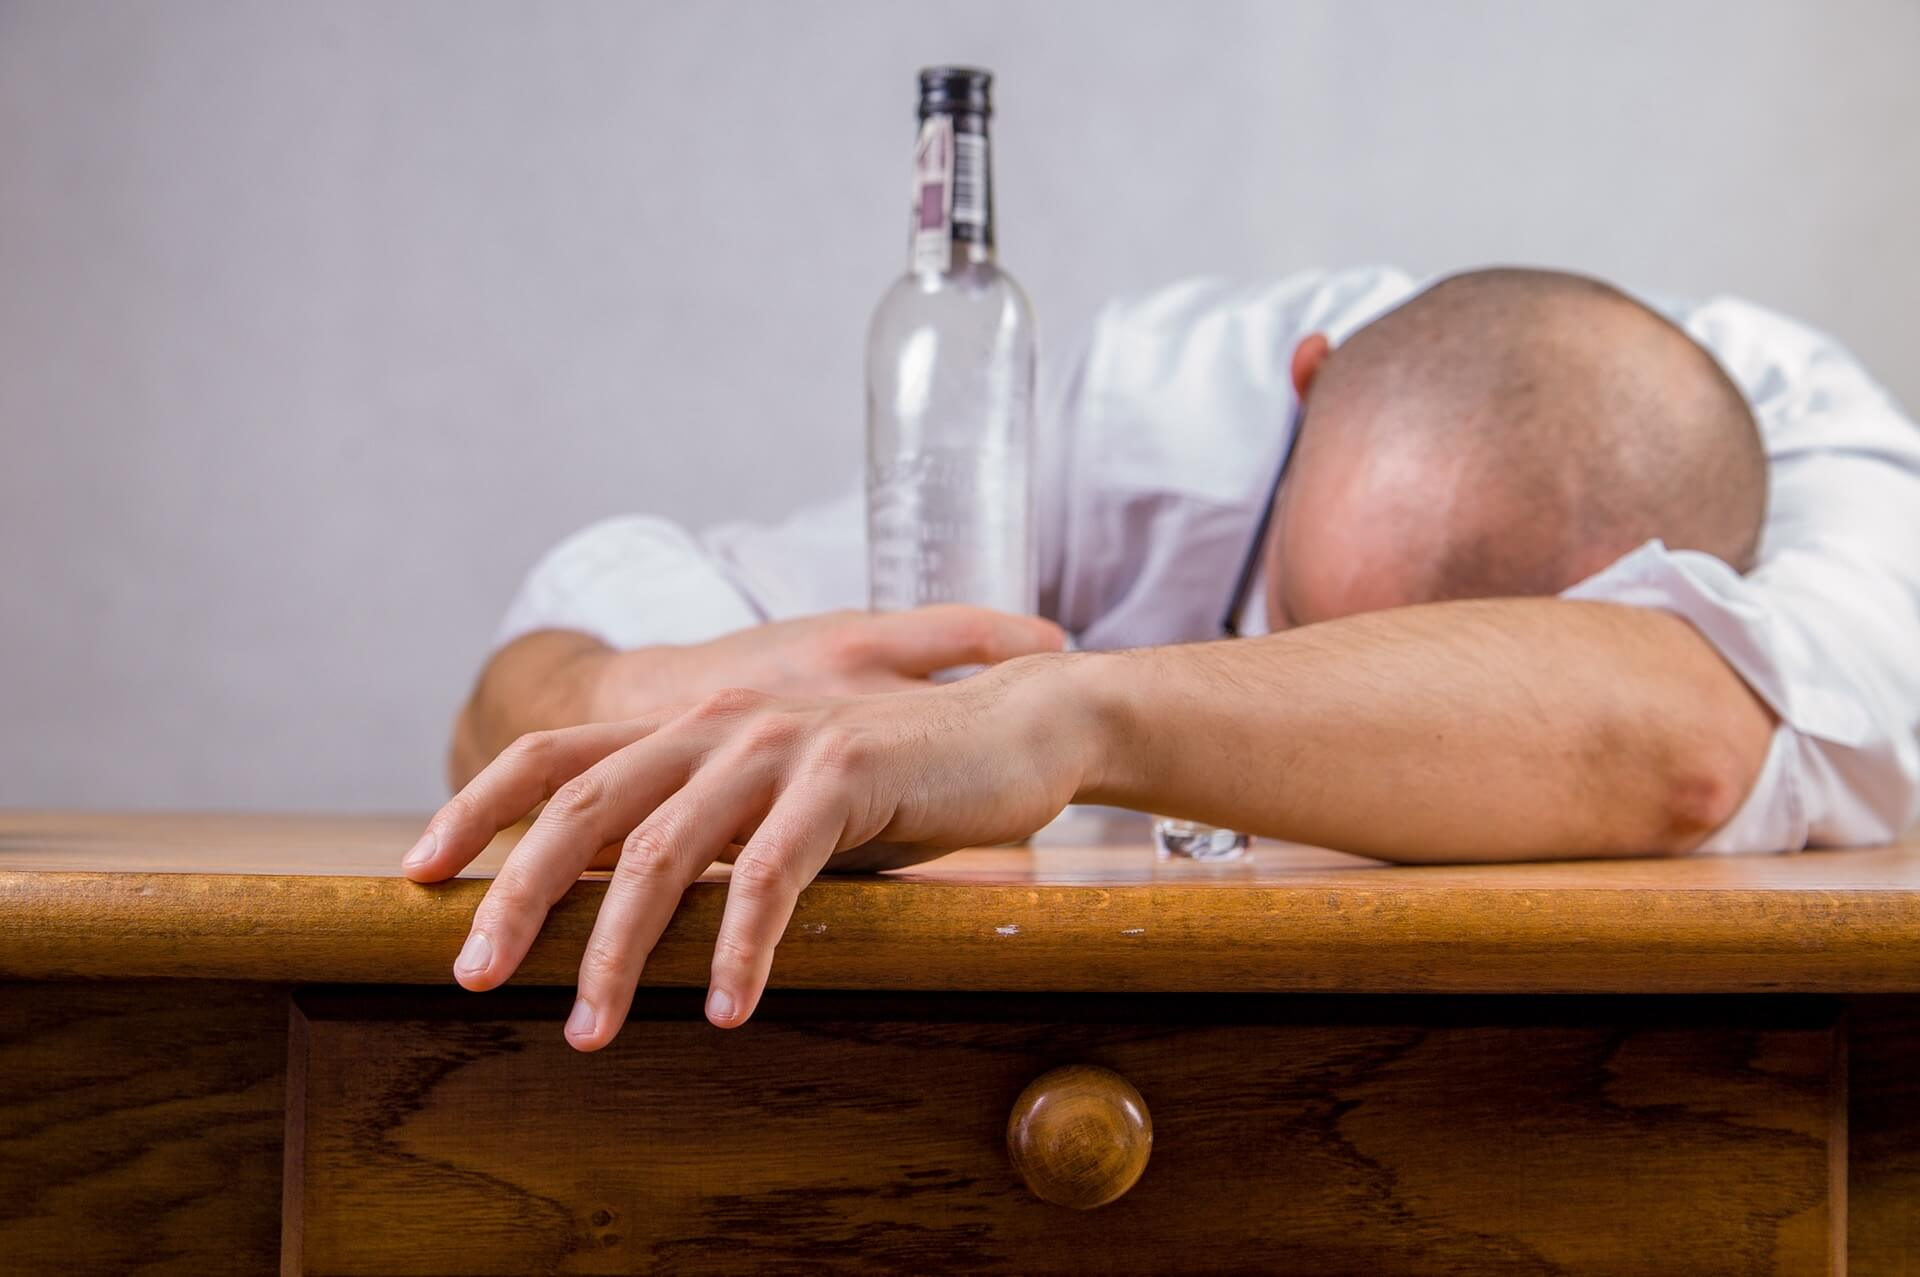 What are the Dangers of Binge Drinking?